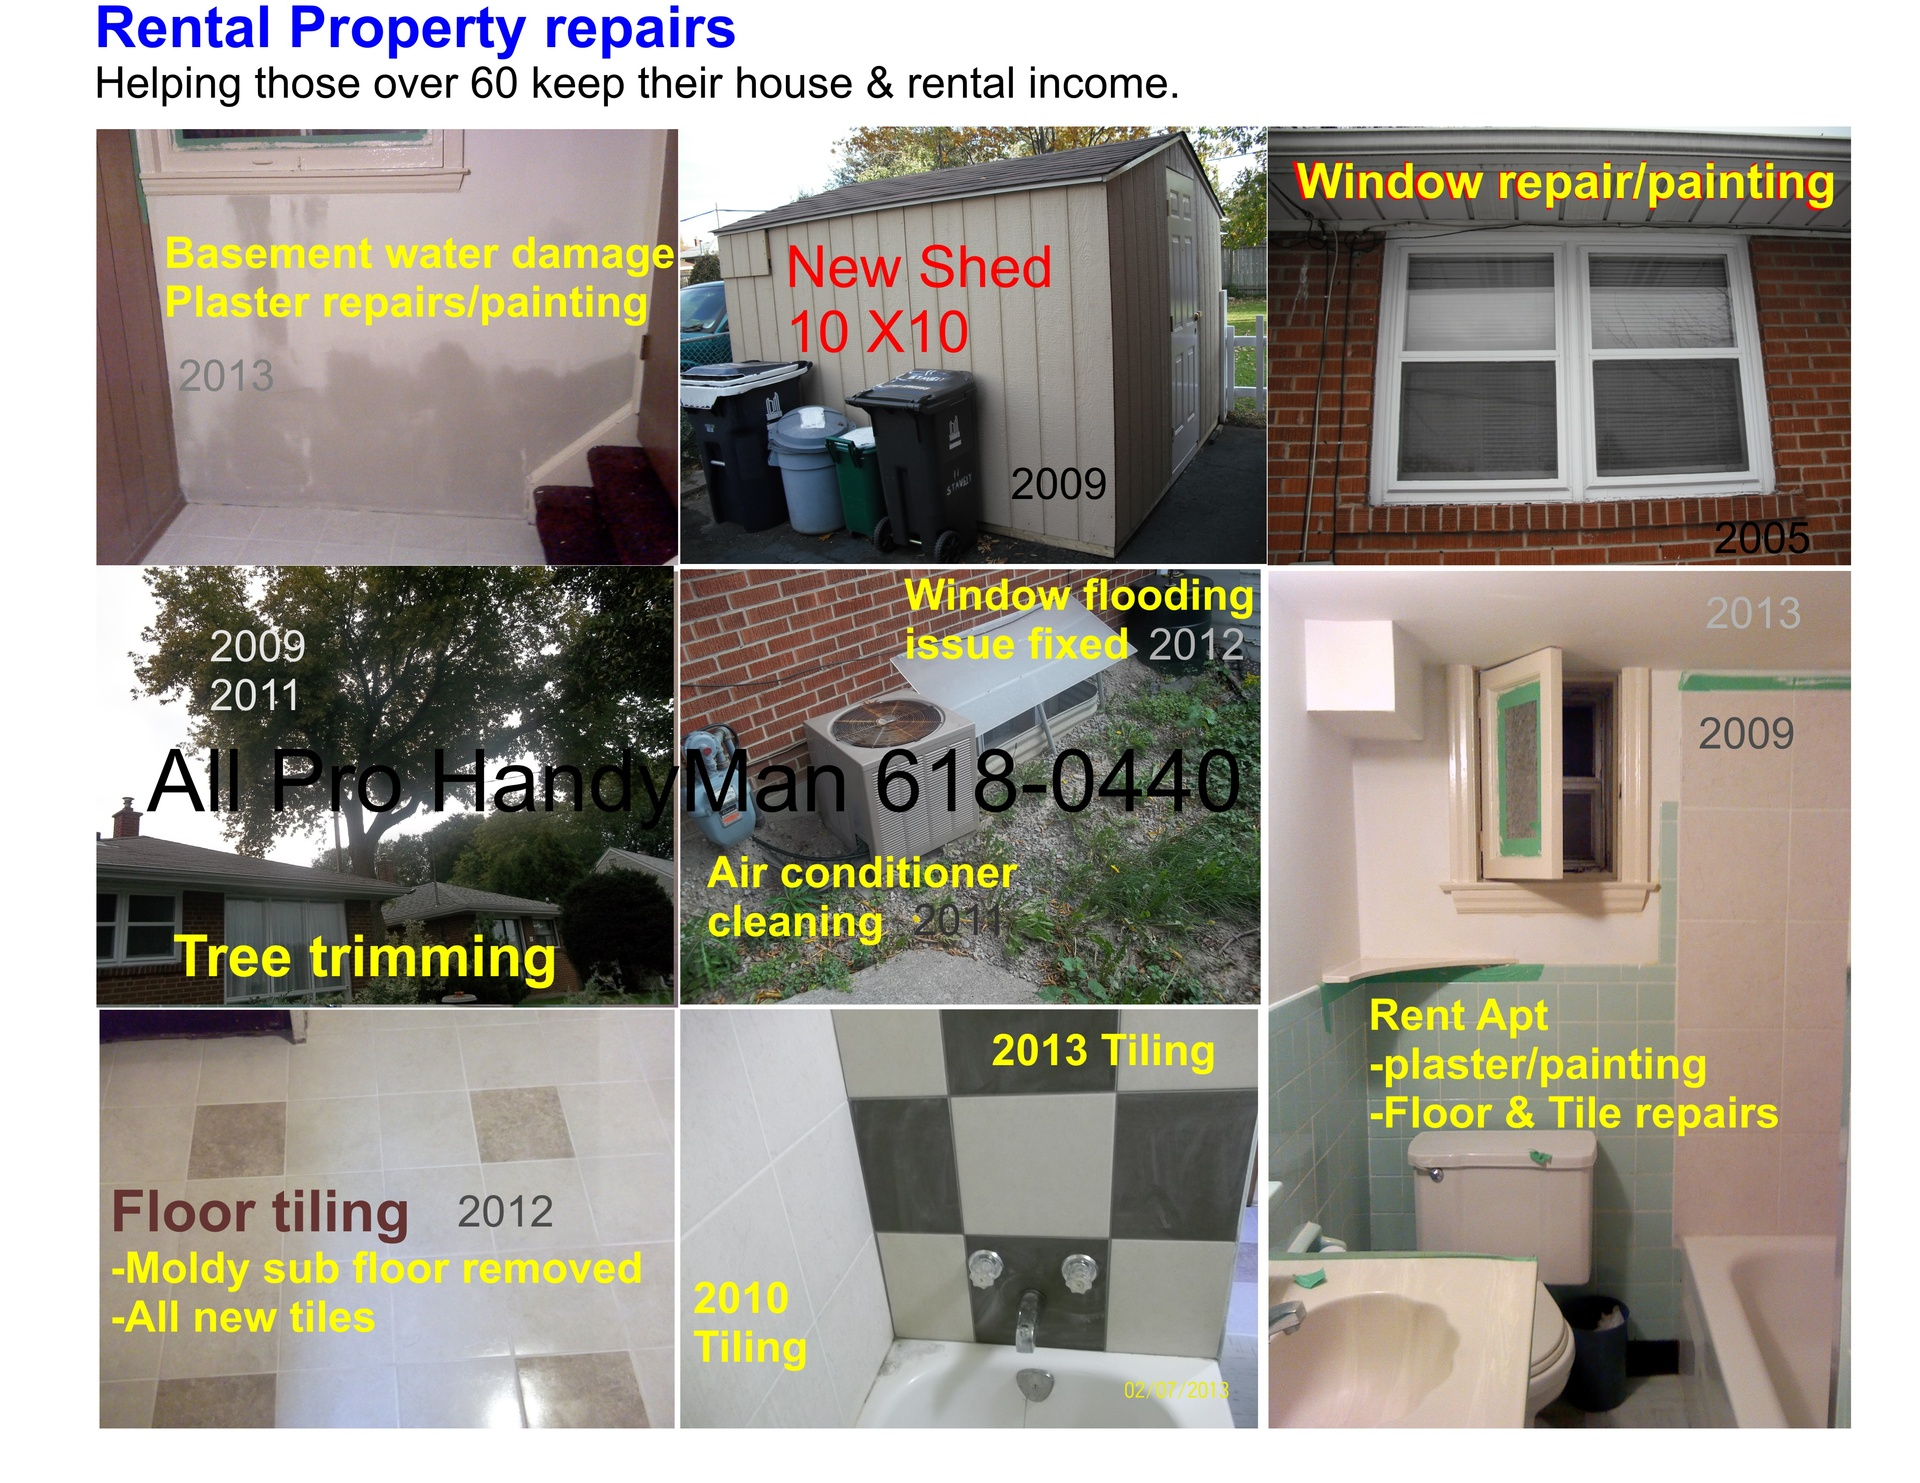 Rental Property - yearly repairs